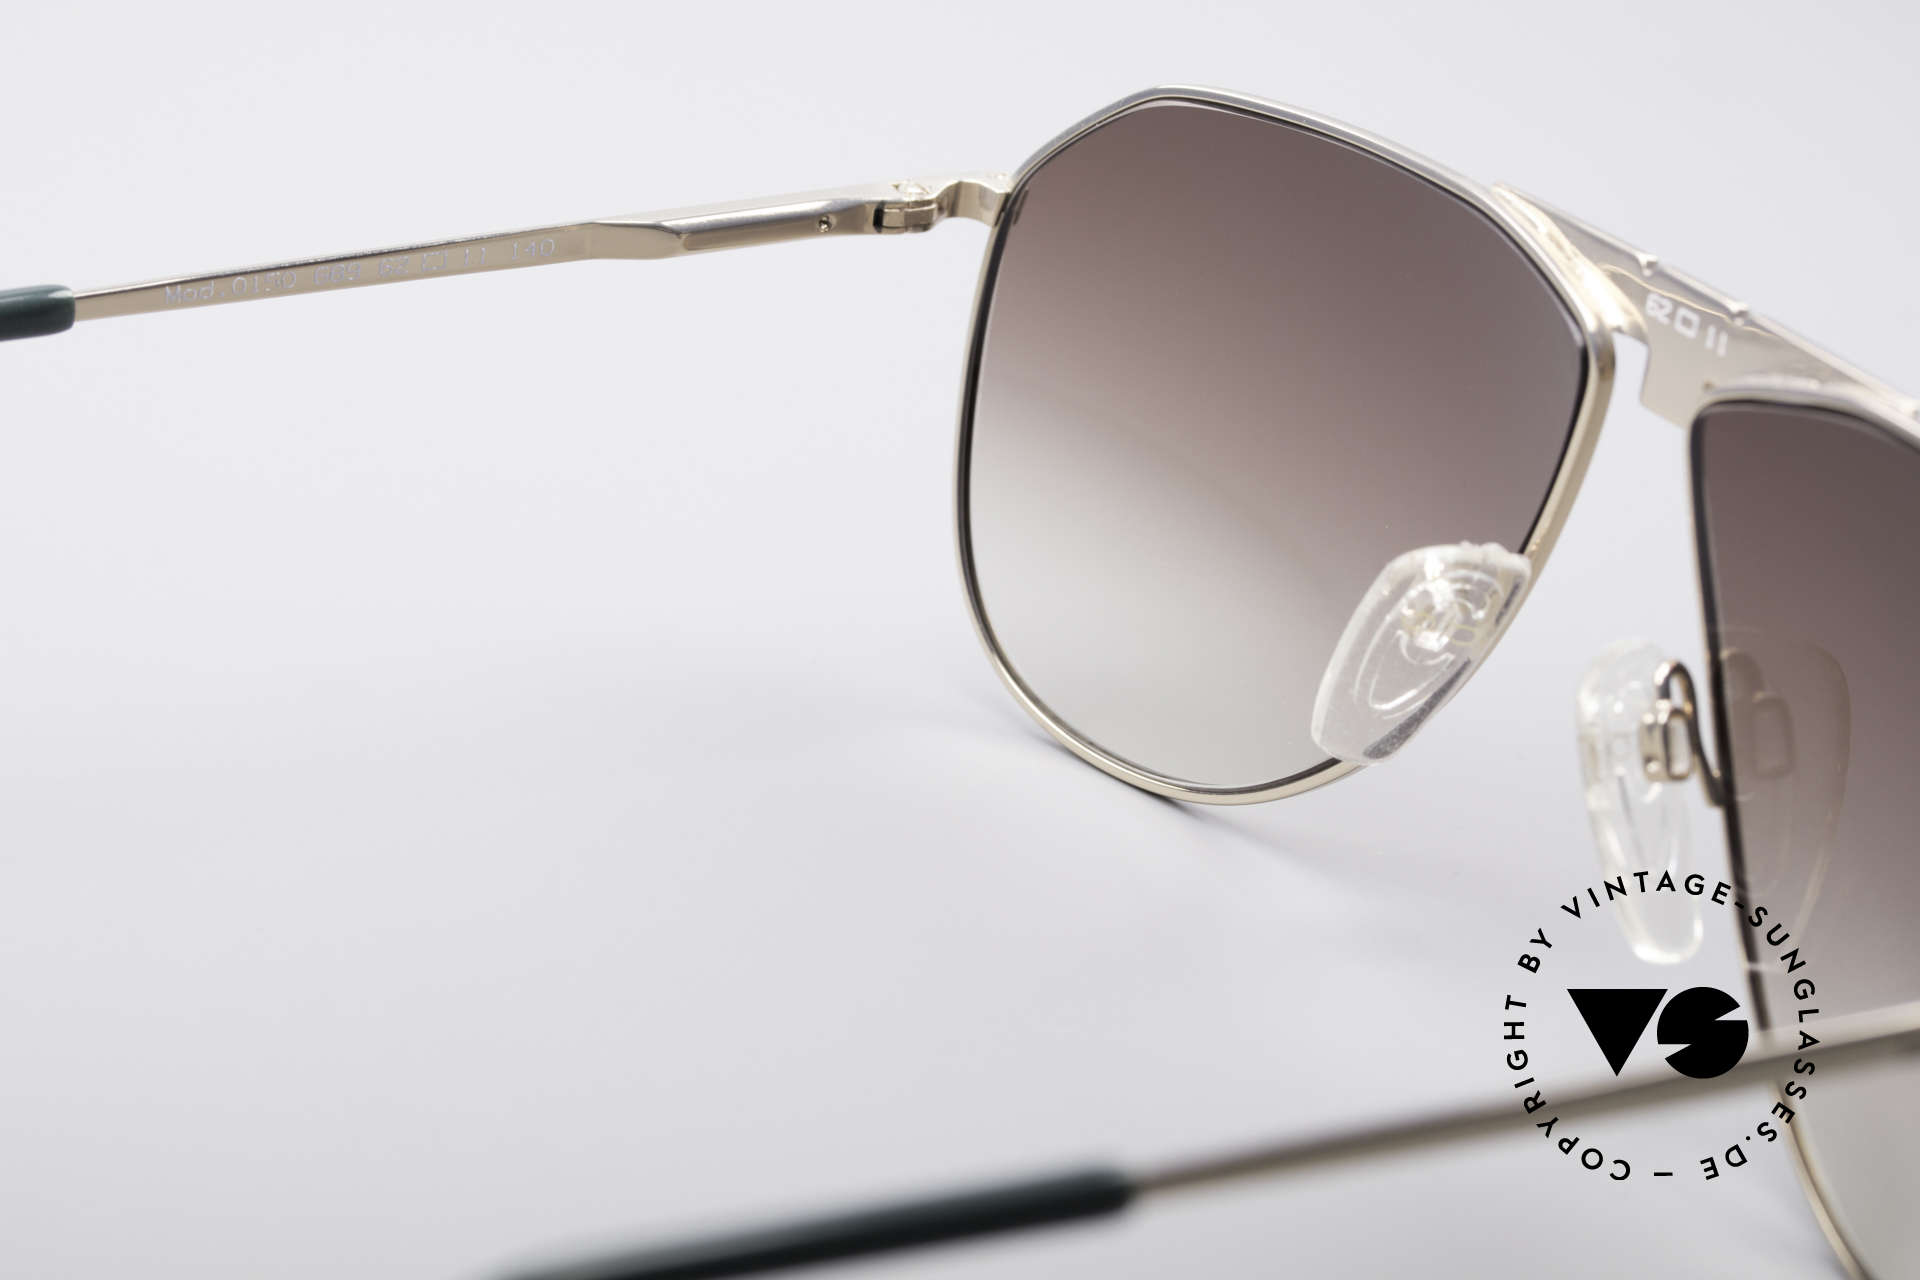 Longines 0150 True Vintage Aviator Shades, the frame is also made for optical lenses, if needed, Made for Men